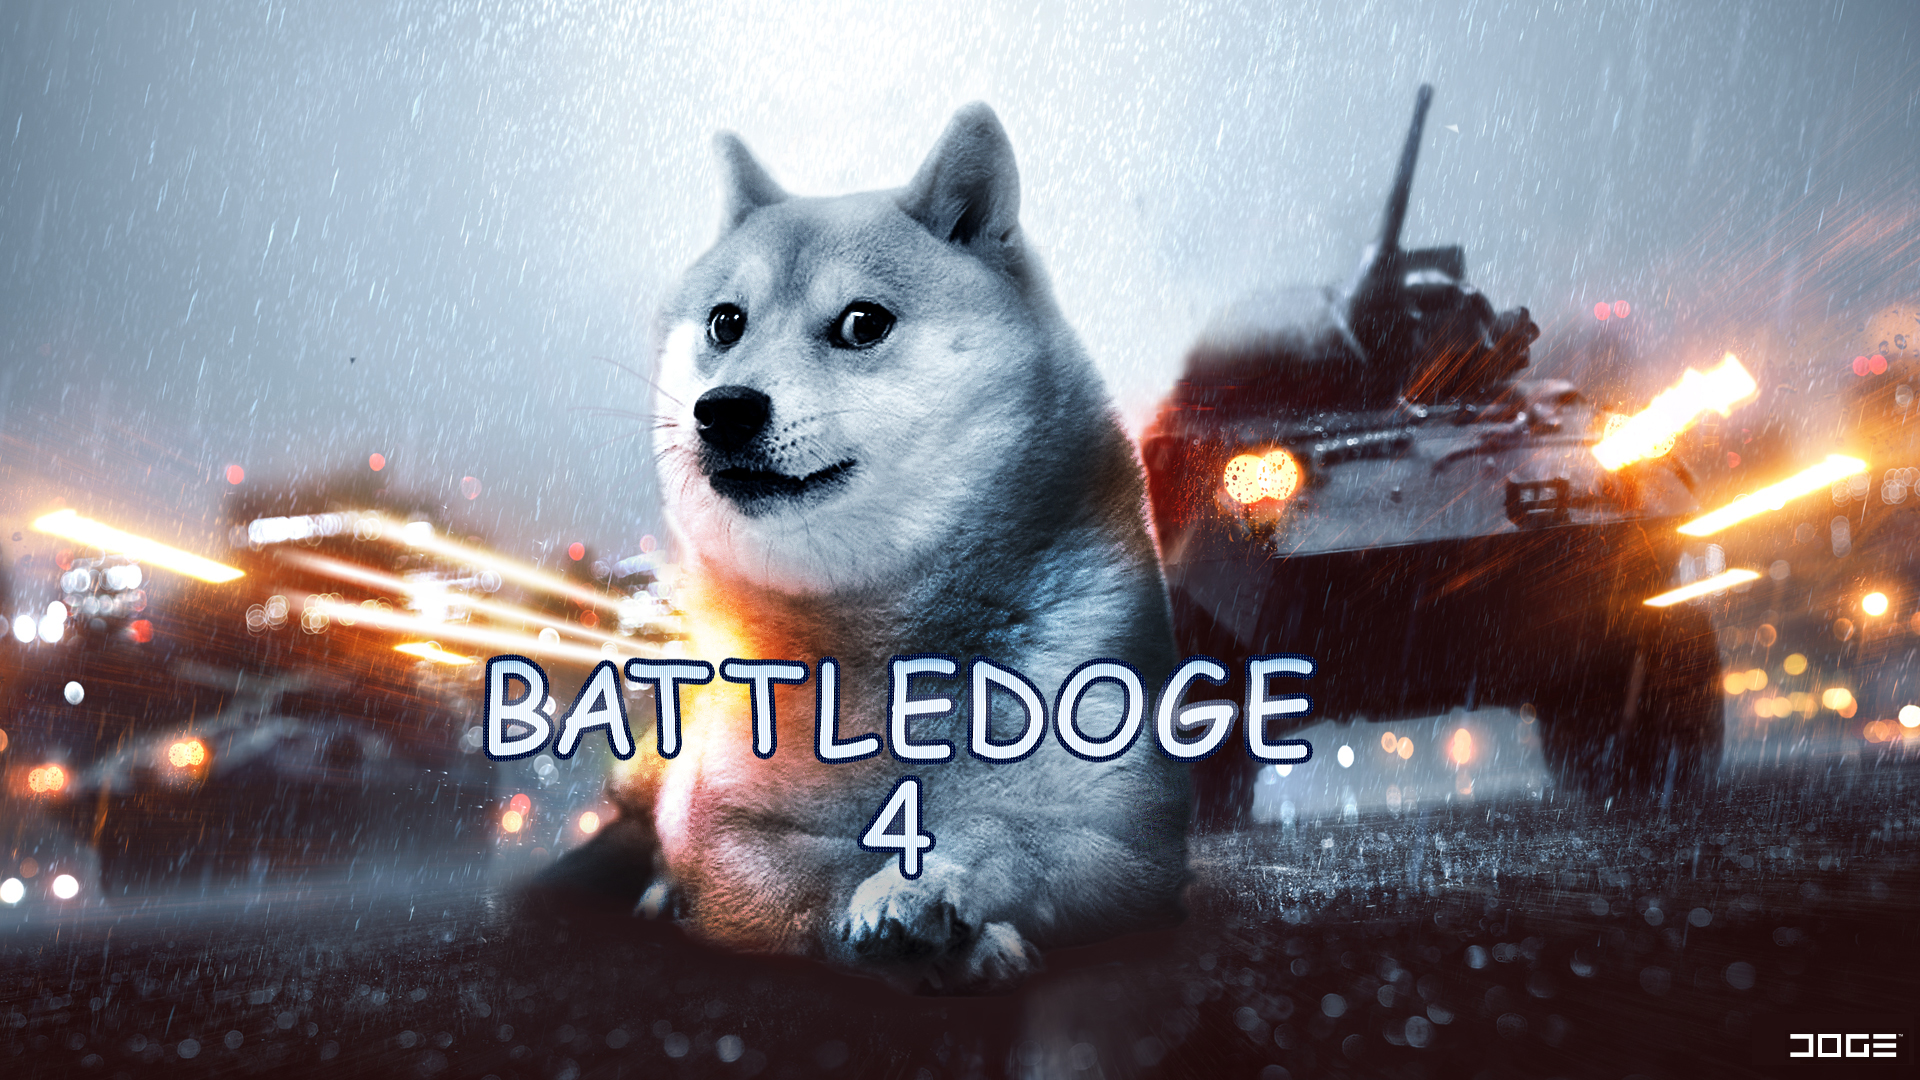 Funny Meme Iphone Wallpapers : Battledoge 4 by doge doge know your meme